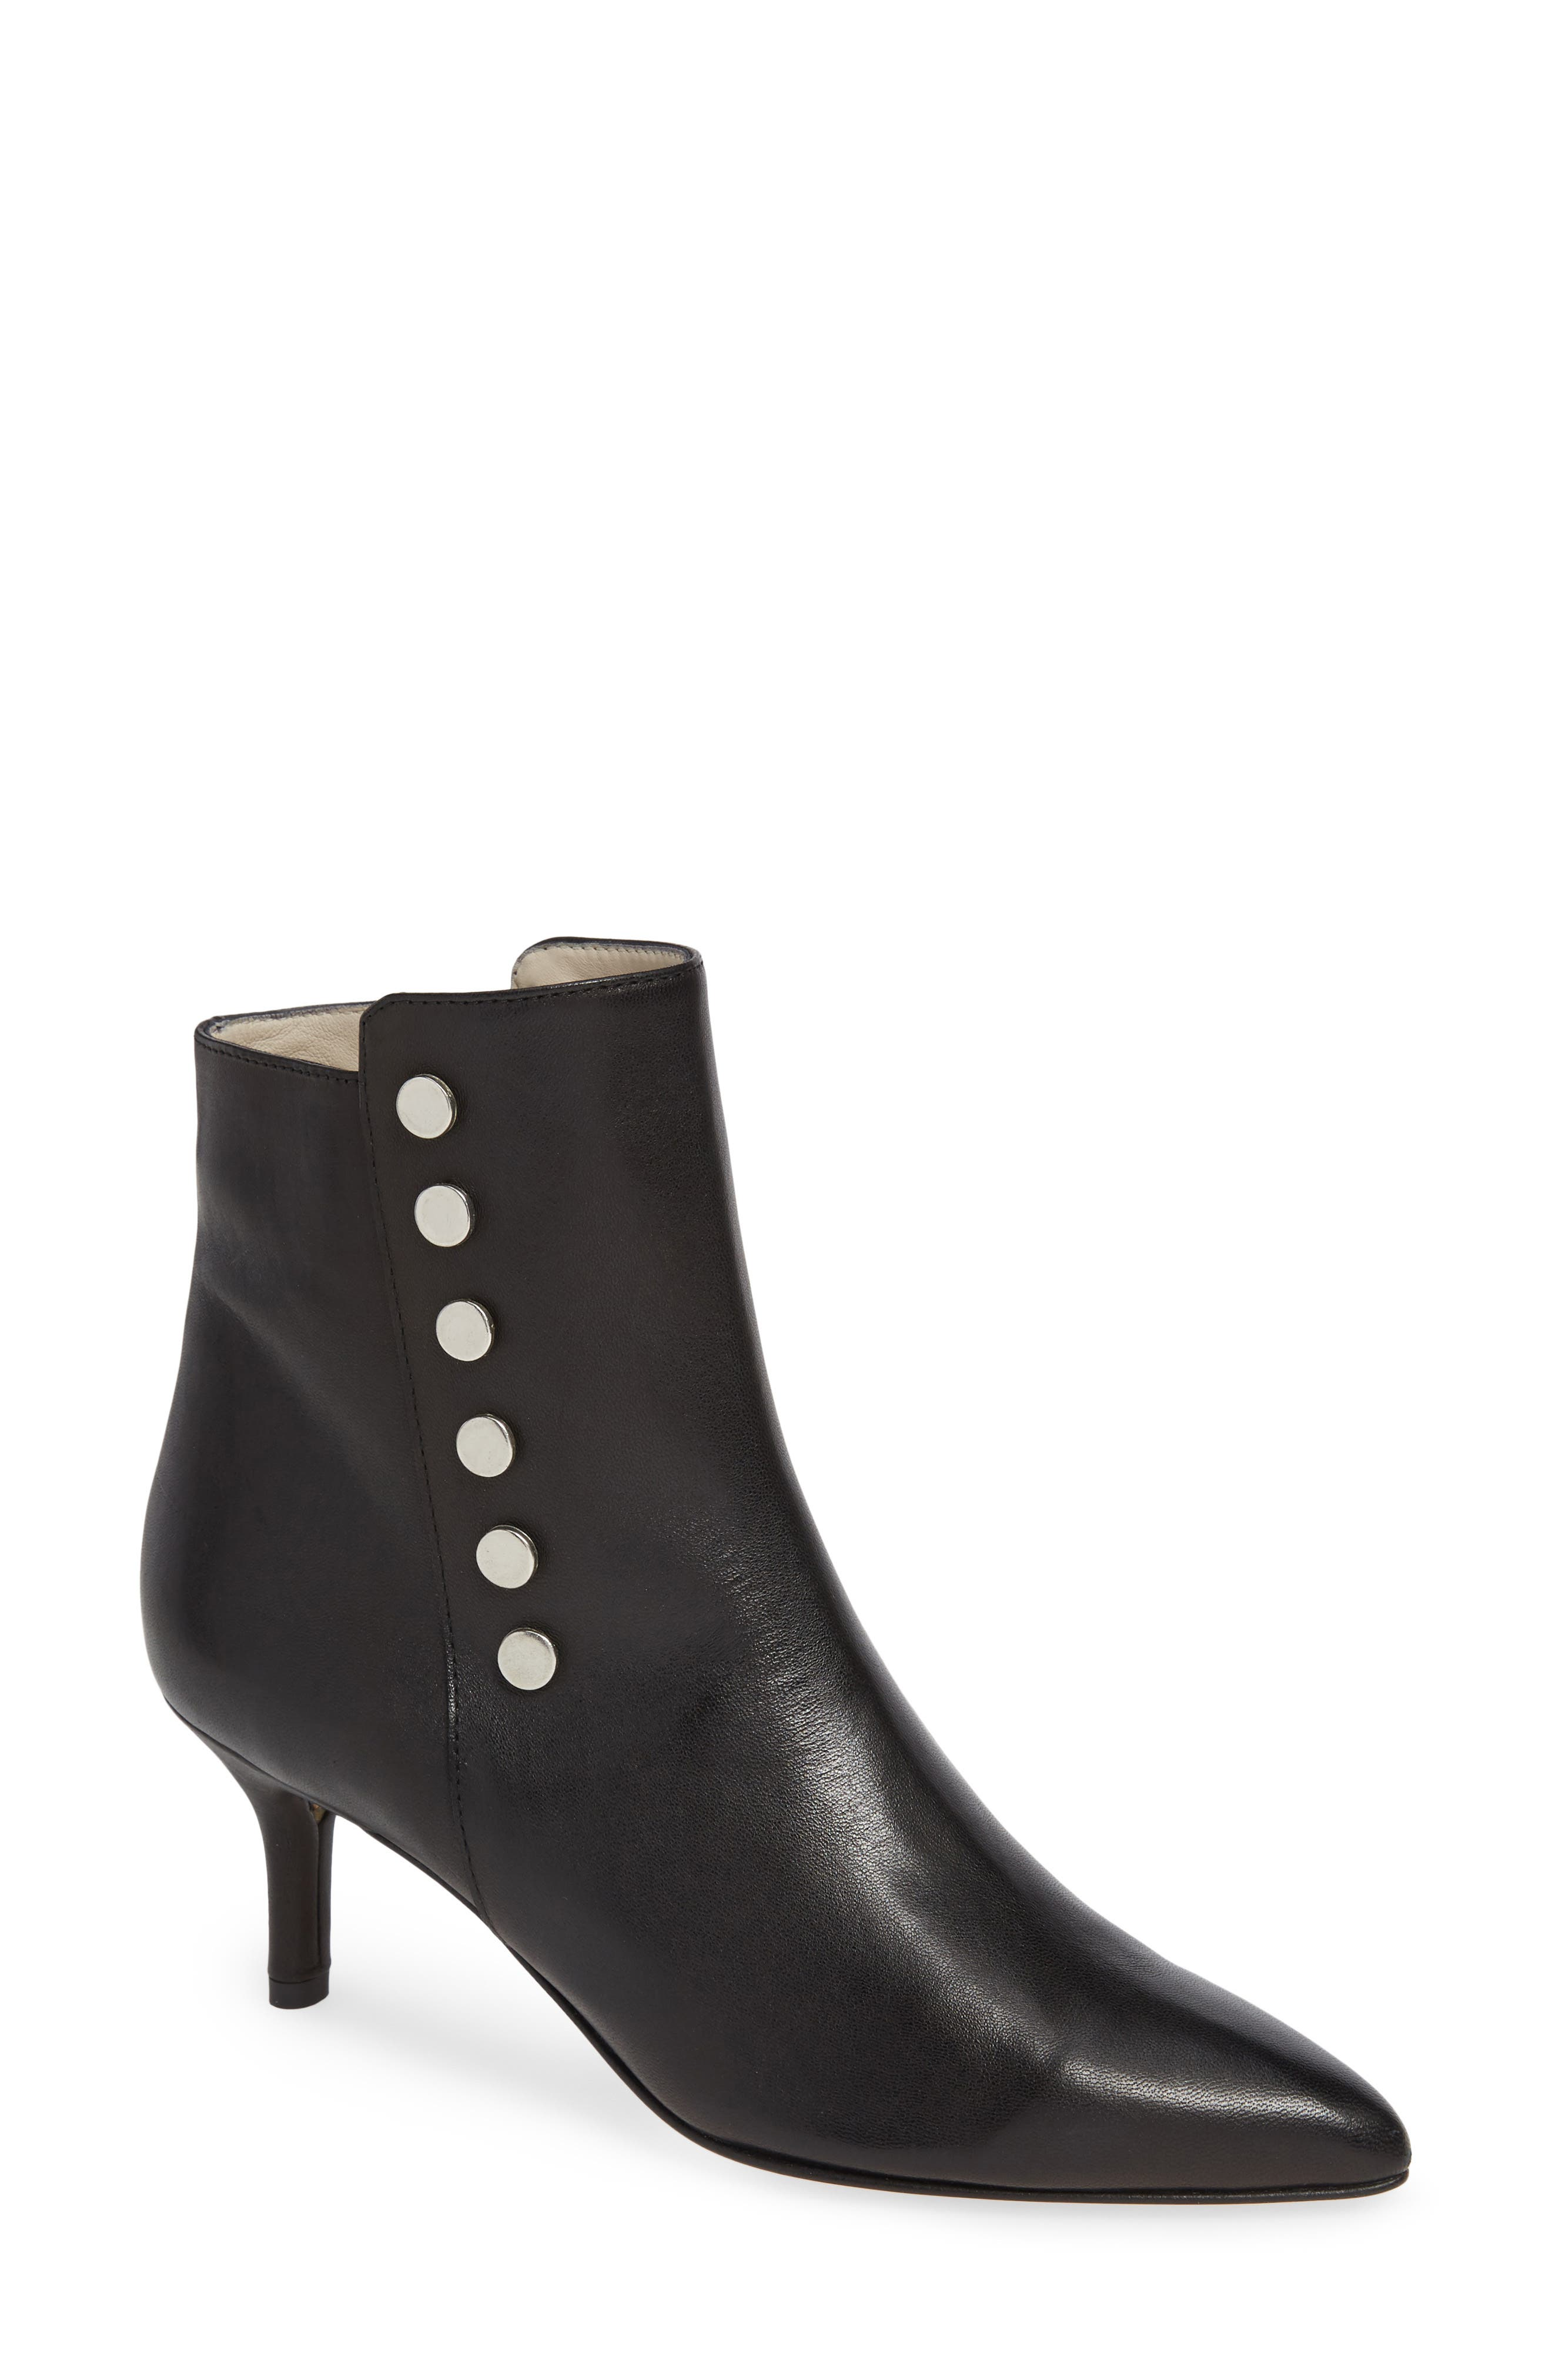 Piccola Bootie in Black Leather